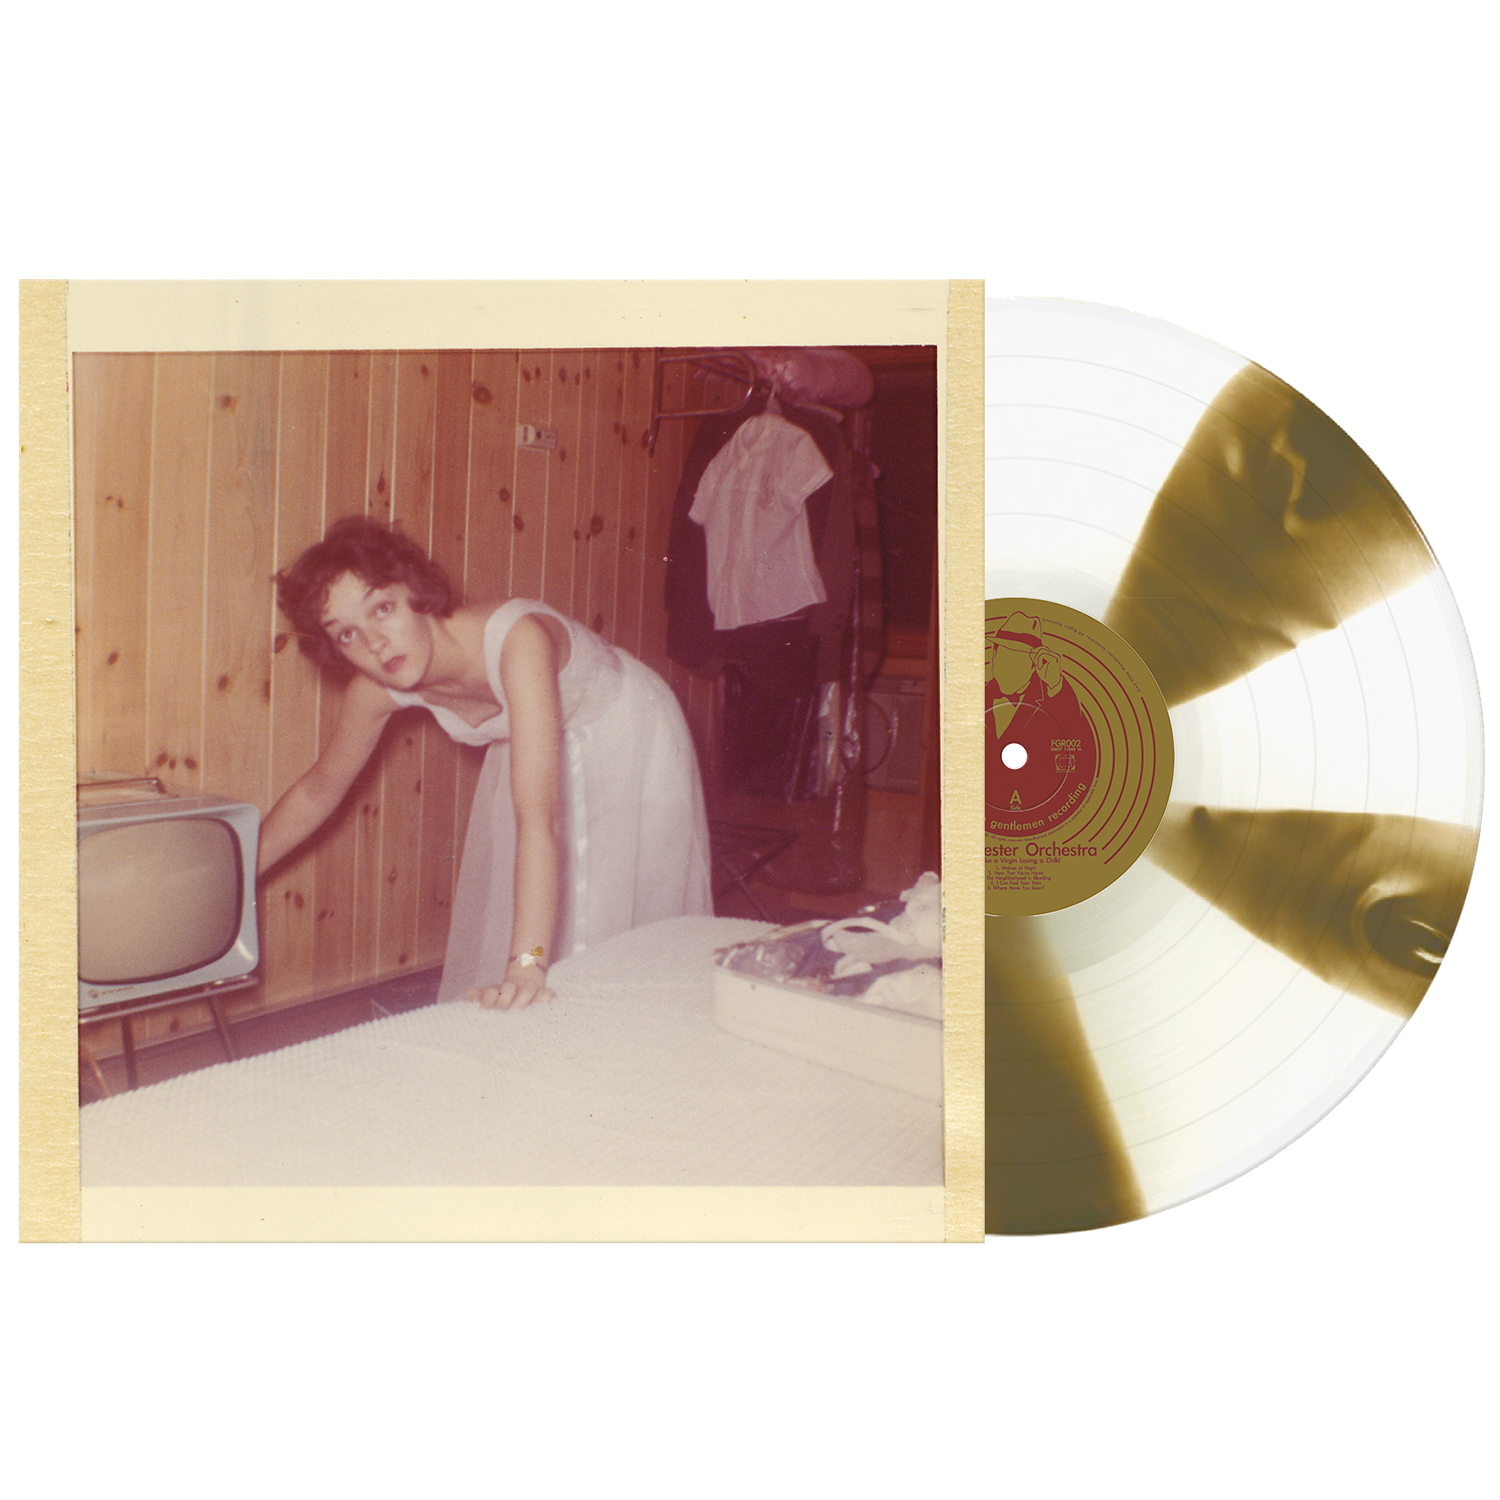 Limited Edition I'm Like a Virgin Losing a Child (6th Pressing)